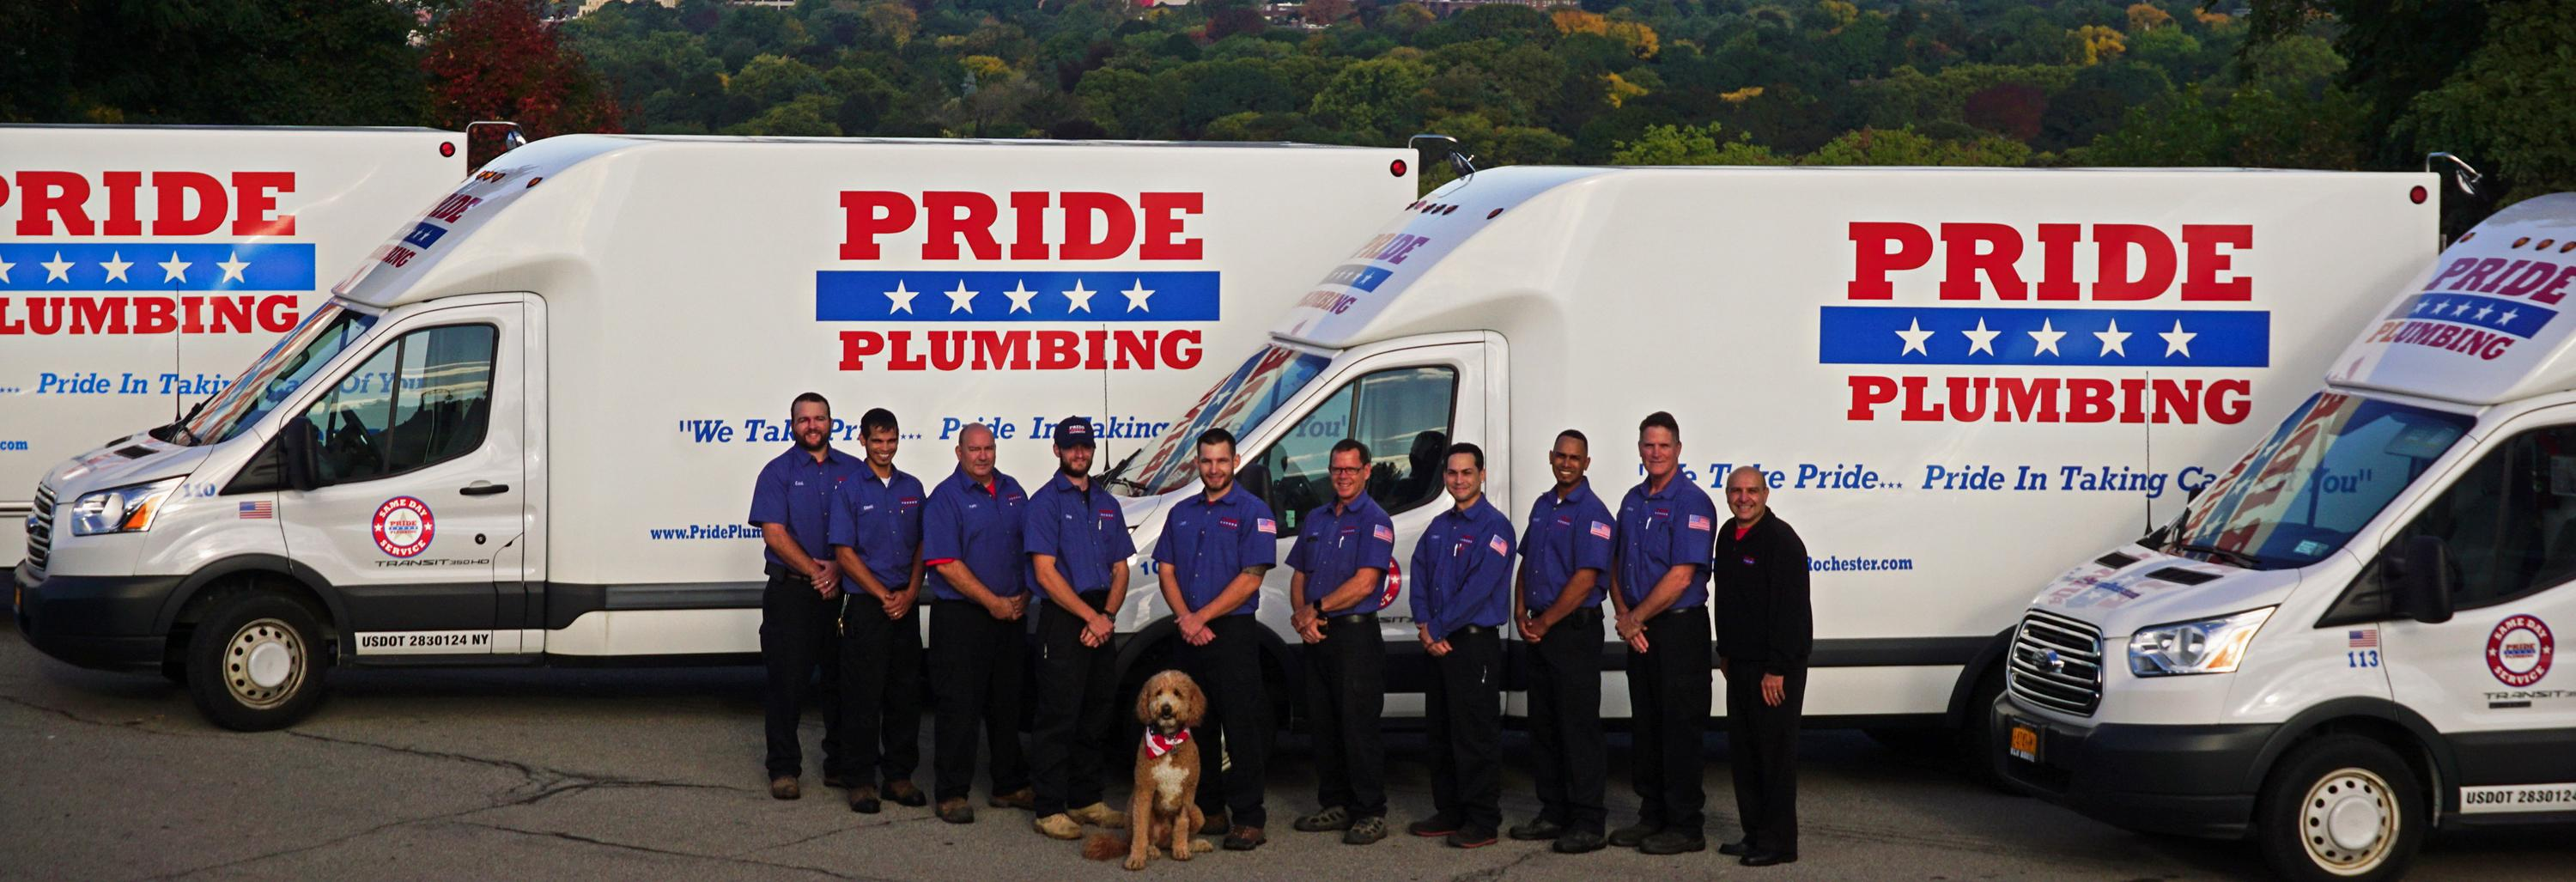 pride plumbing rochester ny